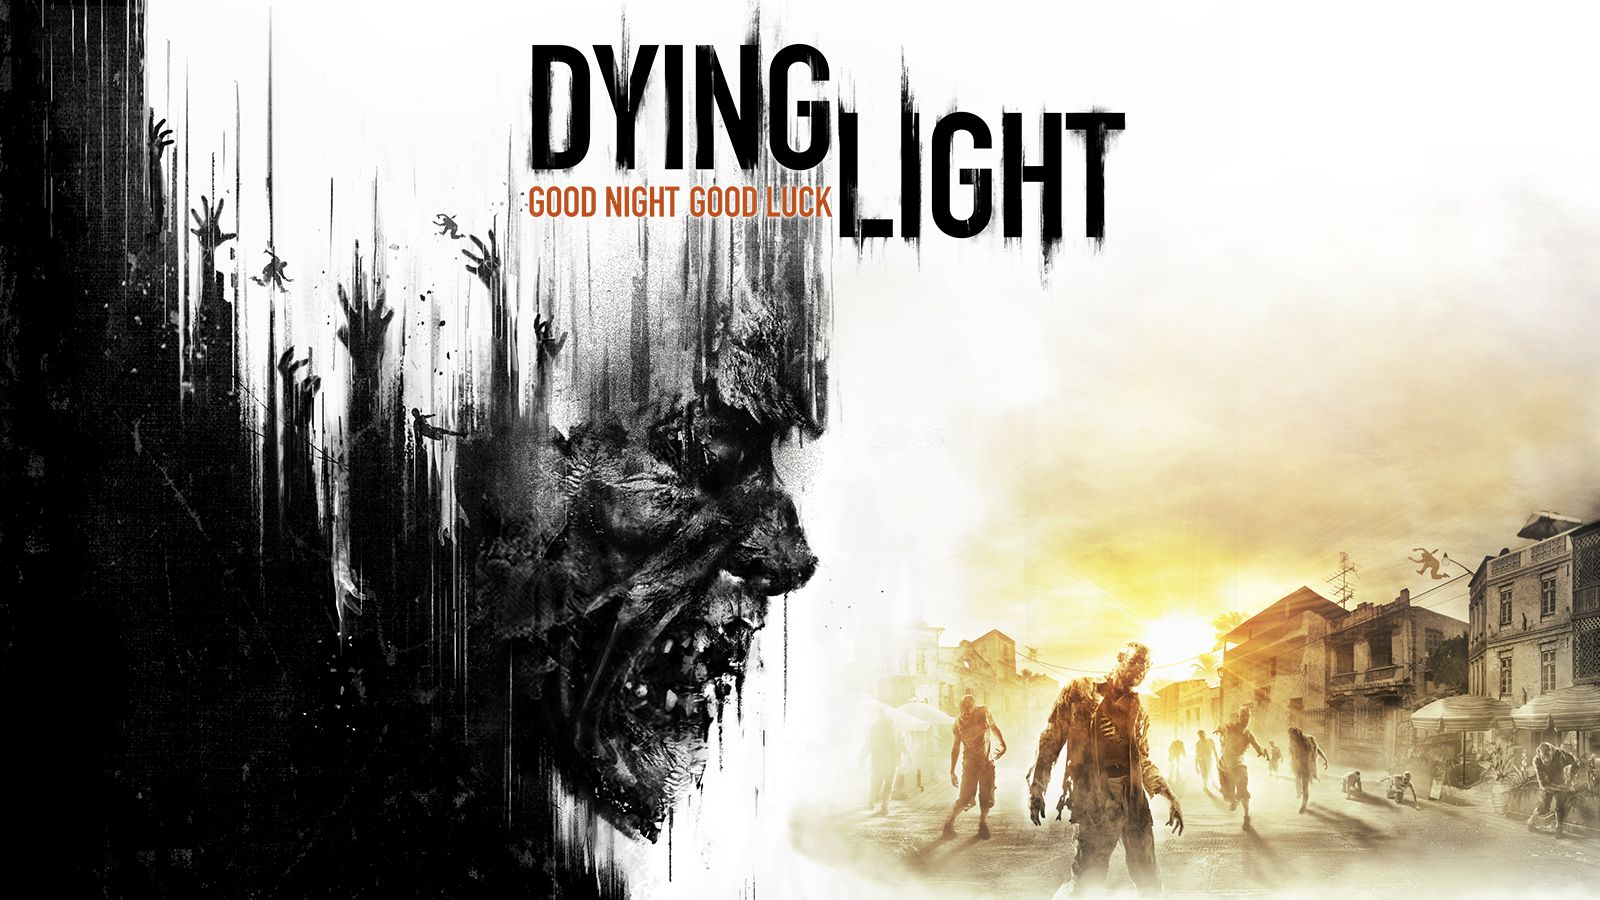 Dying Light Iphone Wallpapers Top Free Dying Light Iphone